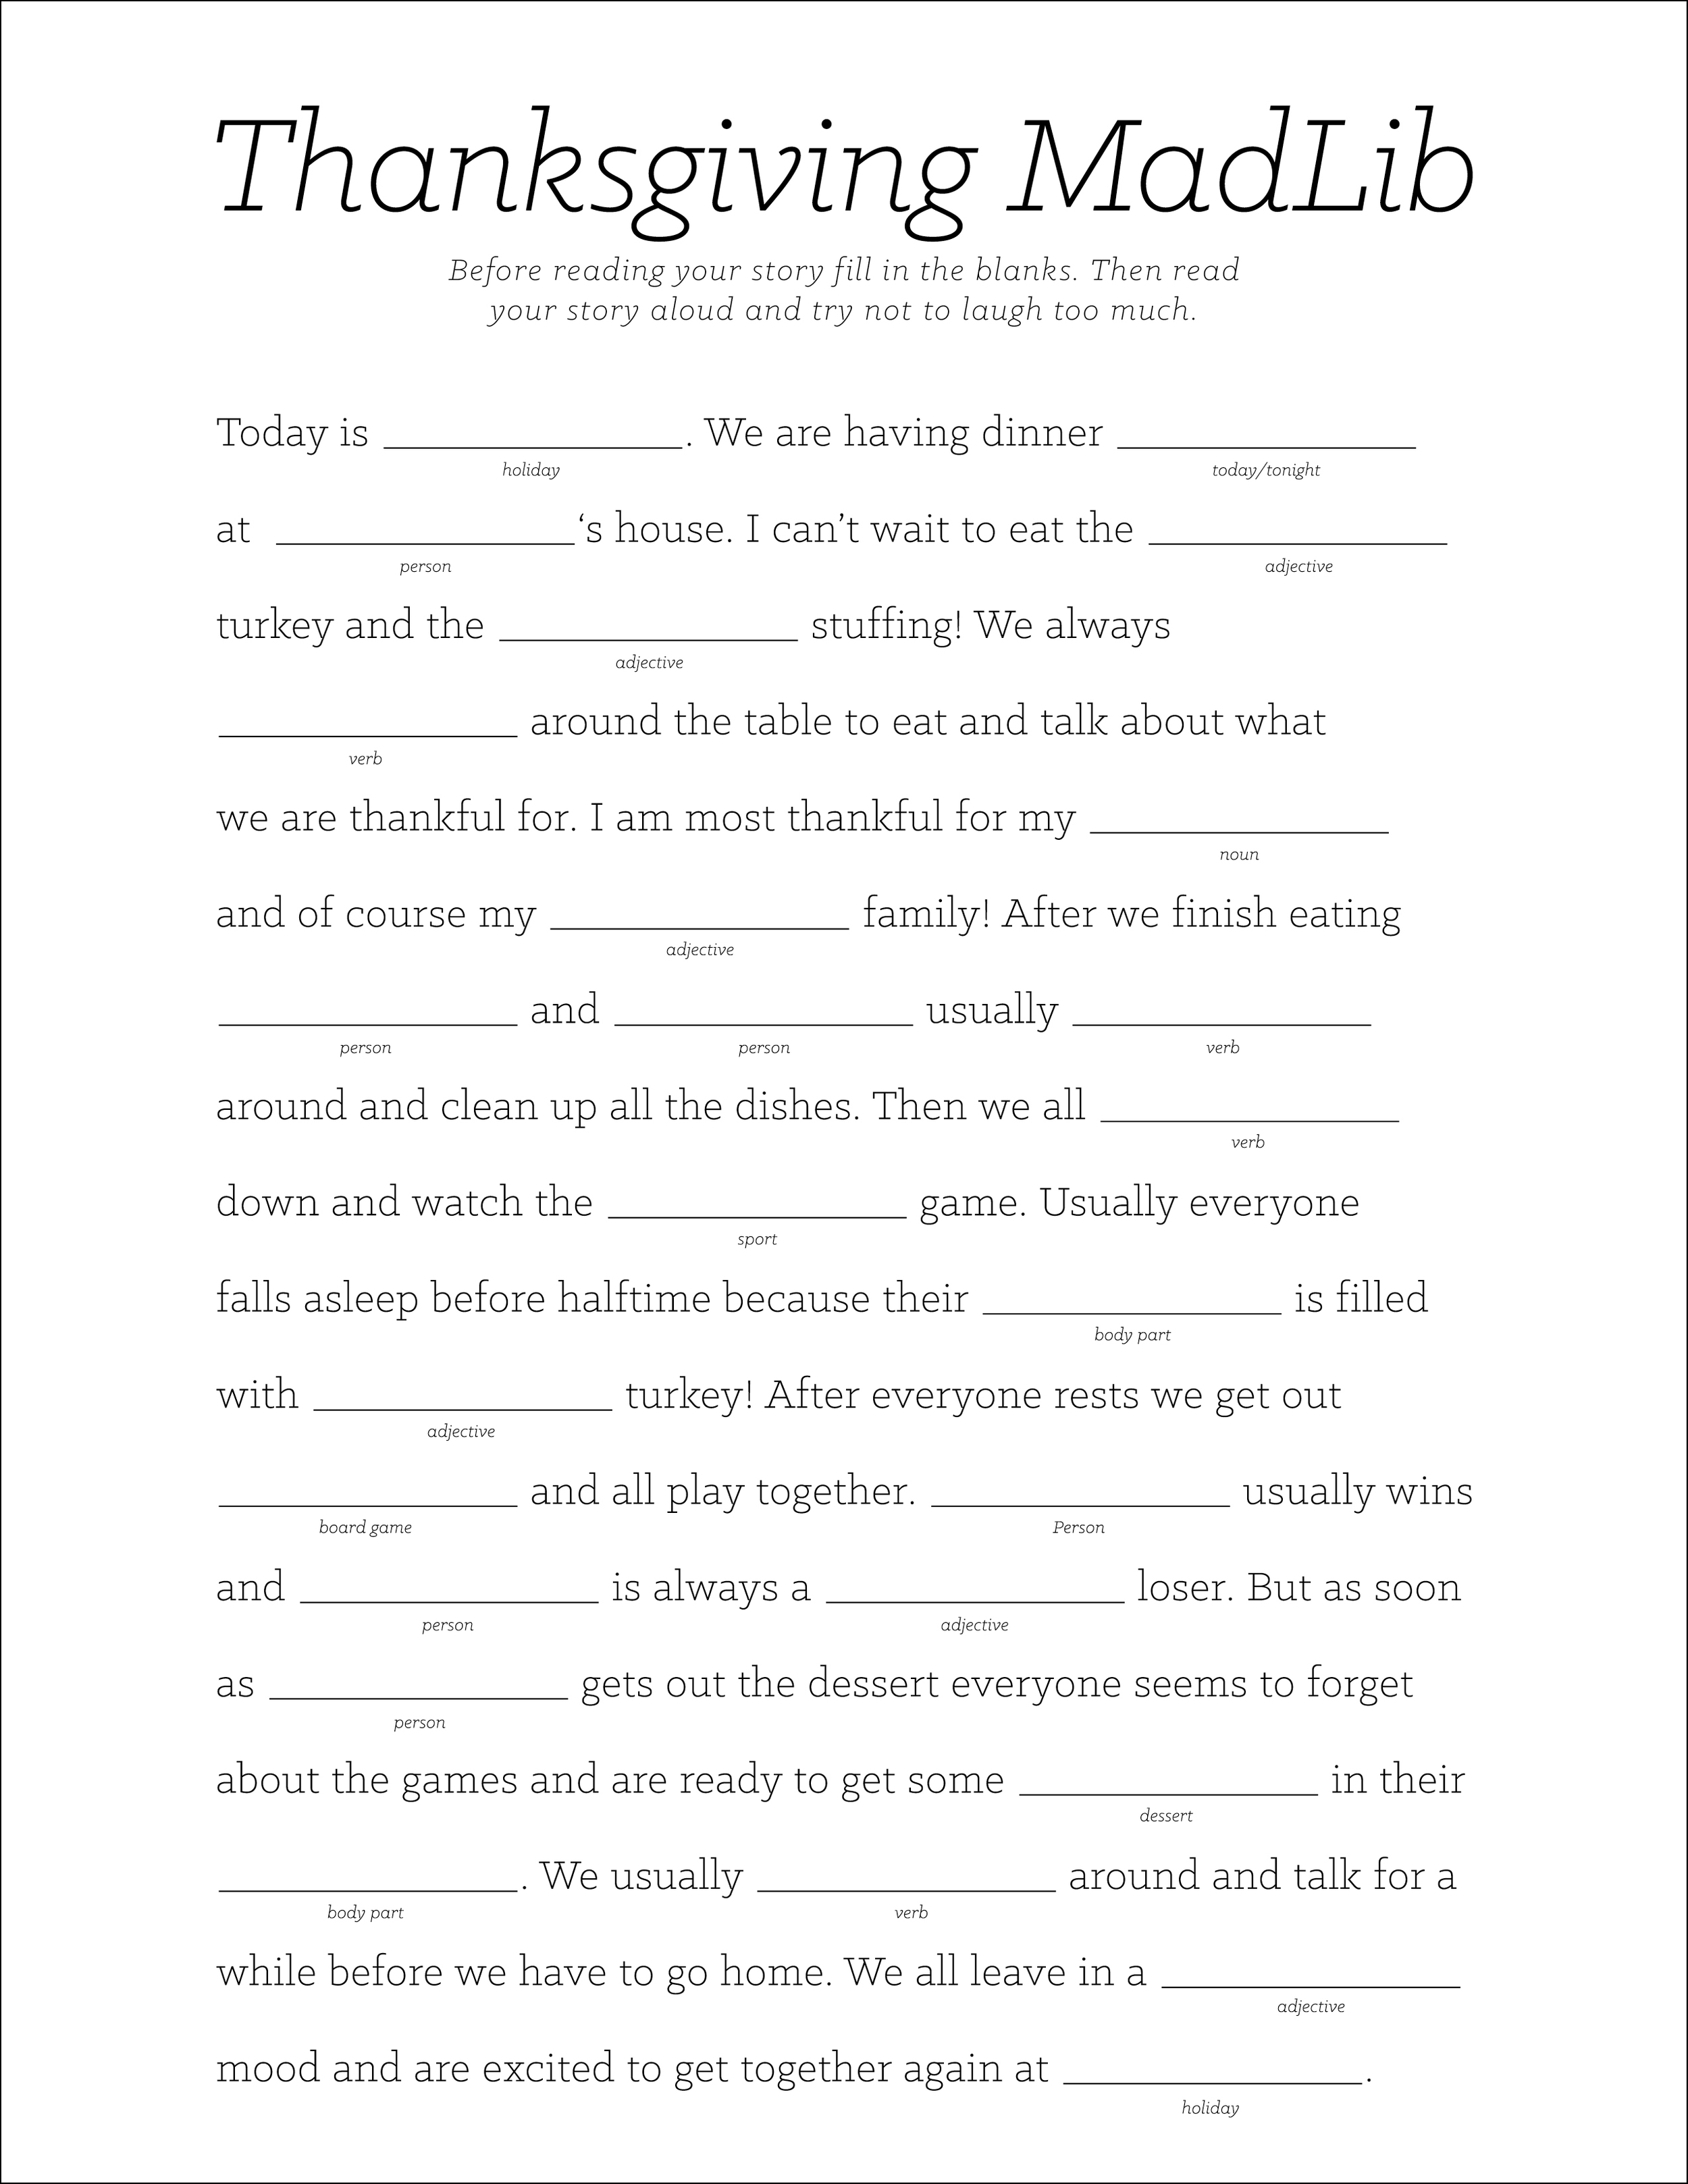 Thanksgiving MadLib (click through to download)